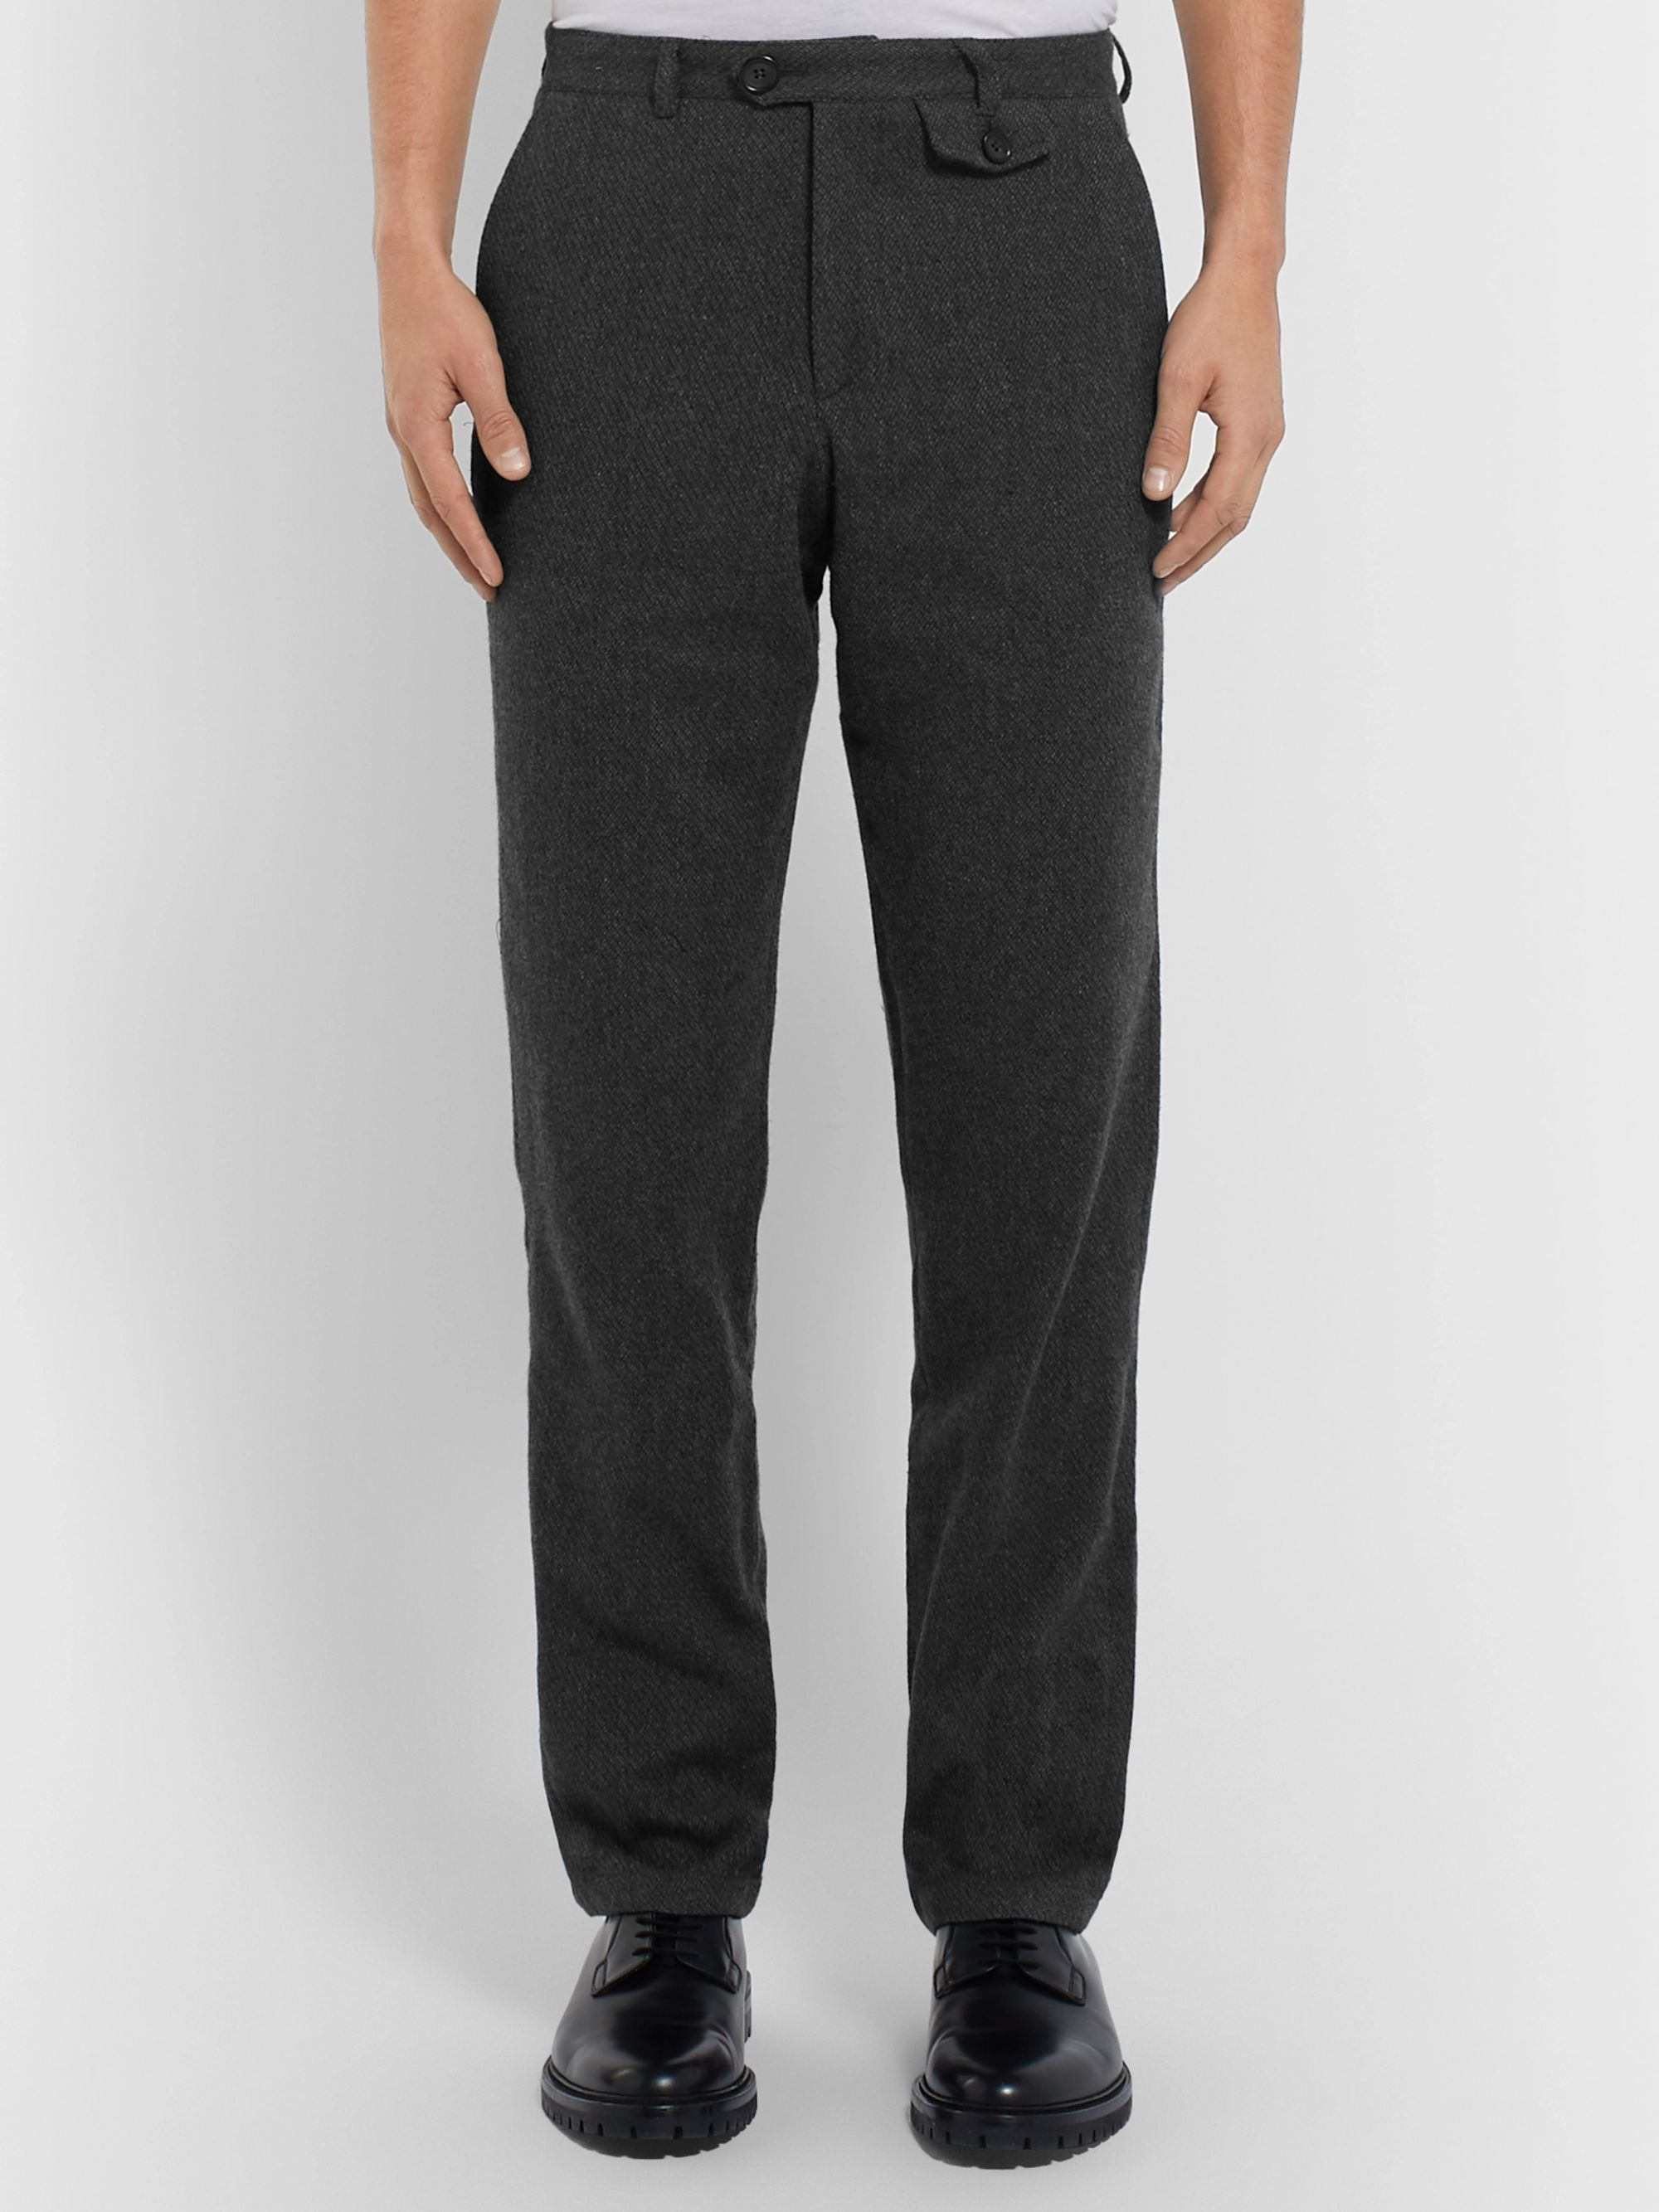 Oliver Spencer Fishtail Cotton and Wool-Blend Trousers